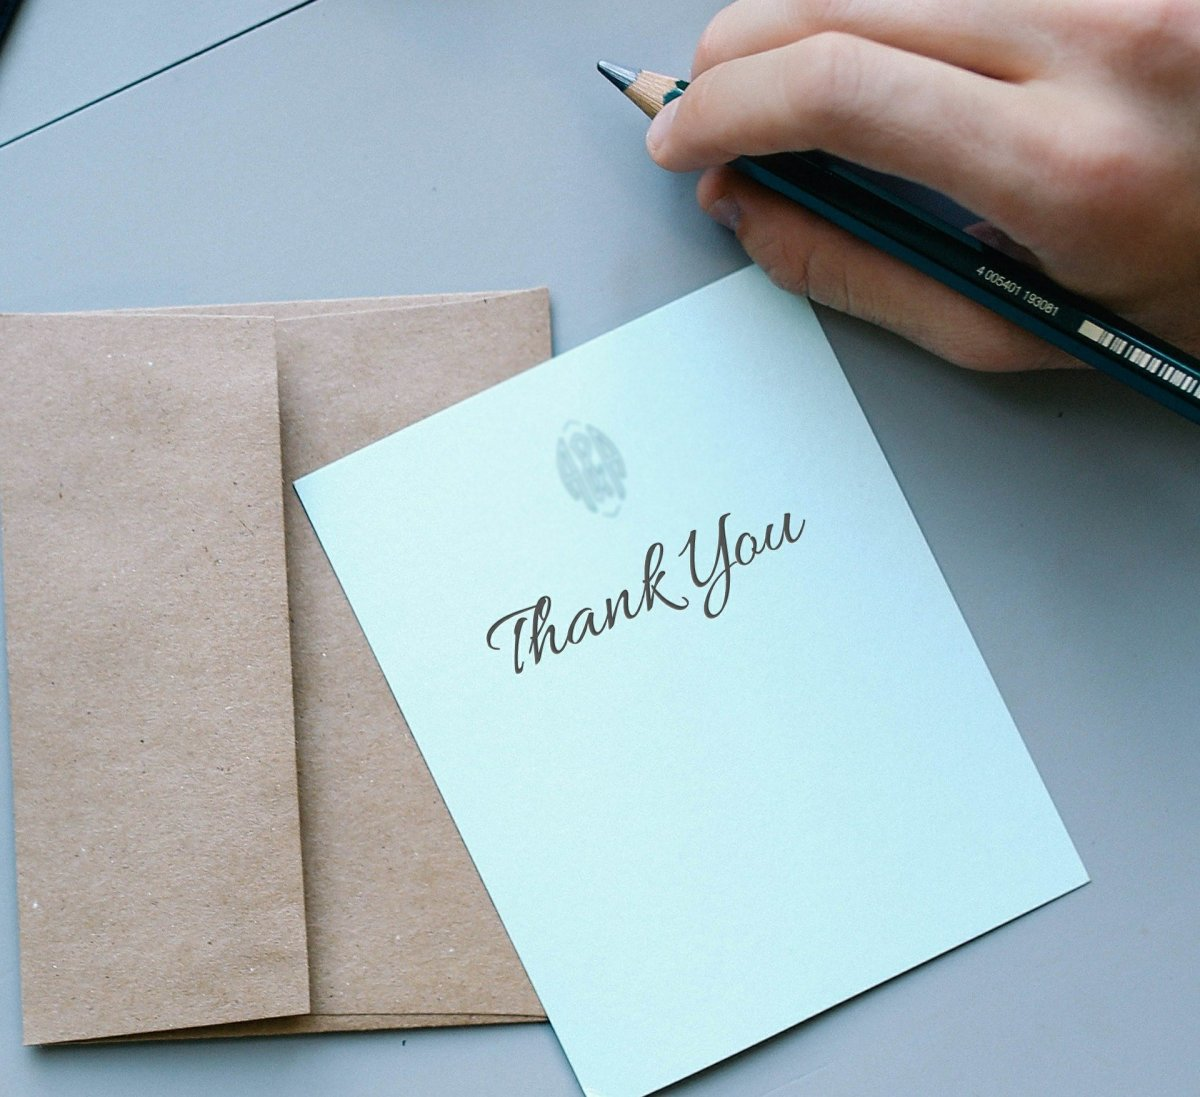 Writing in a thank you card is part of the way that you can get started on a gratitude list. Thank you cards are one of the easiest ways to express gratitude.